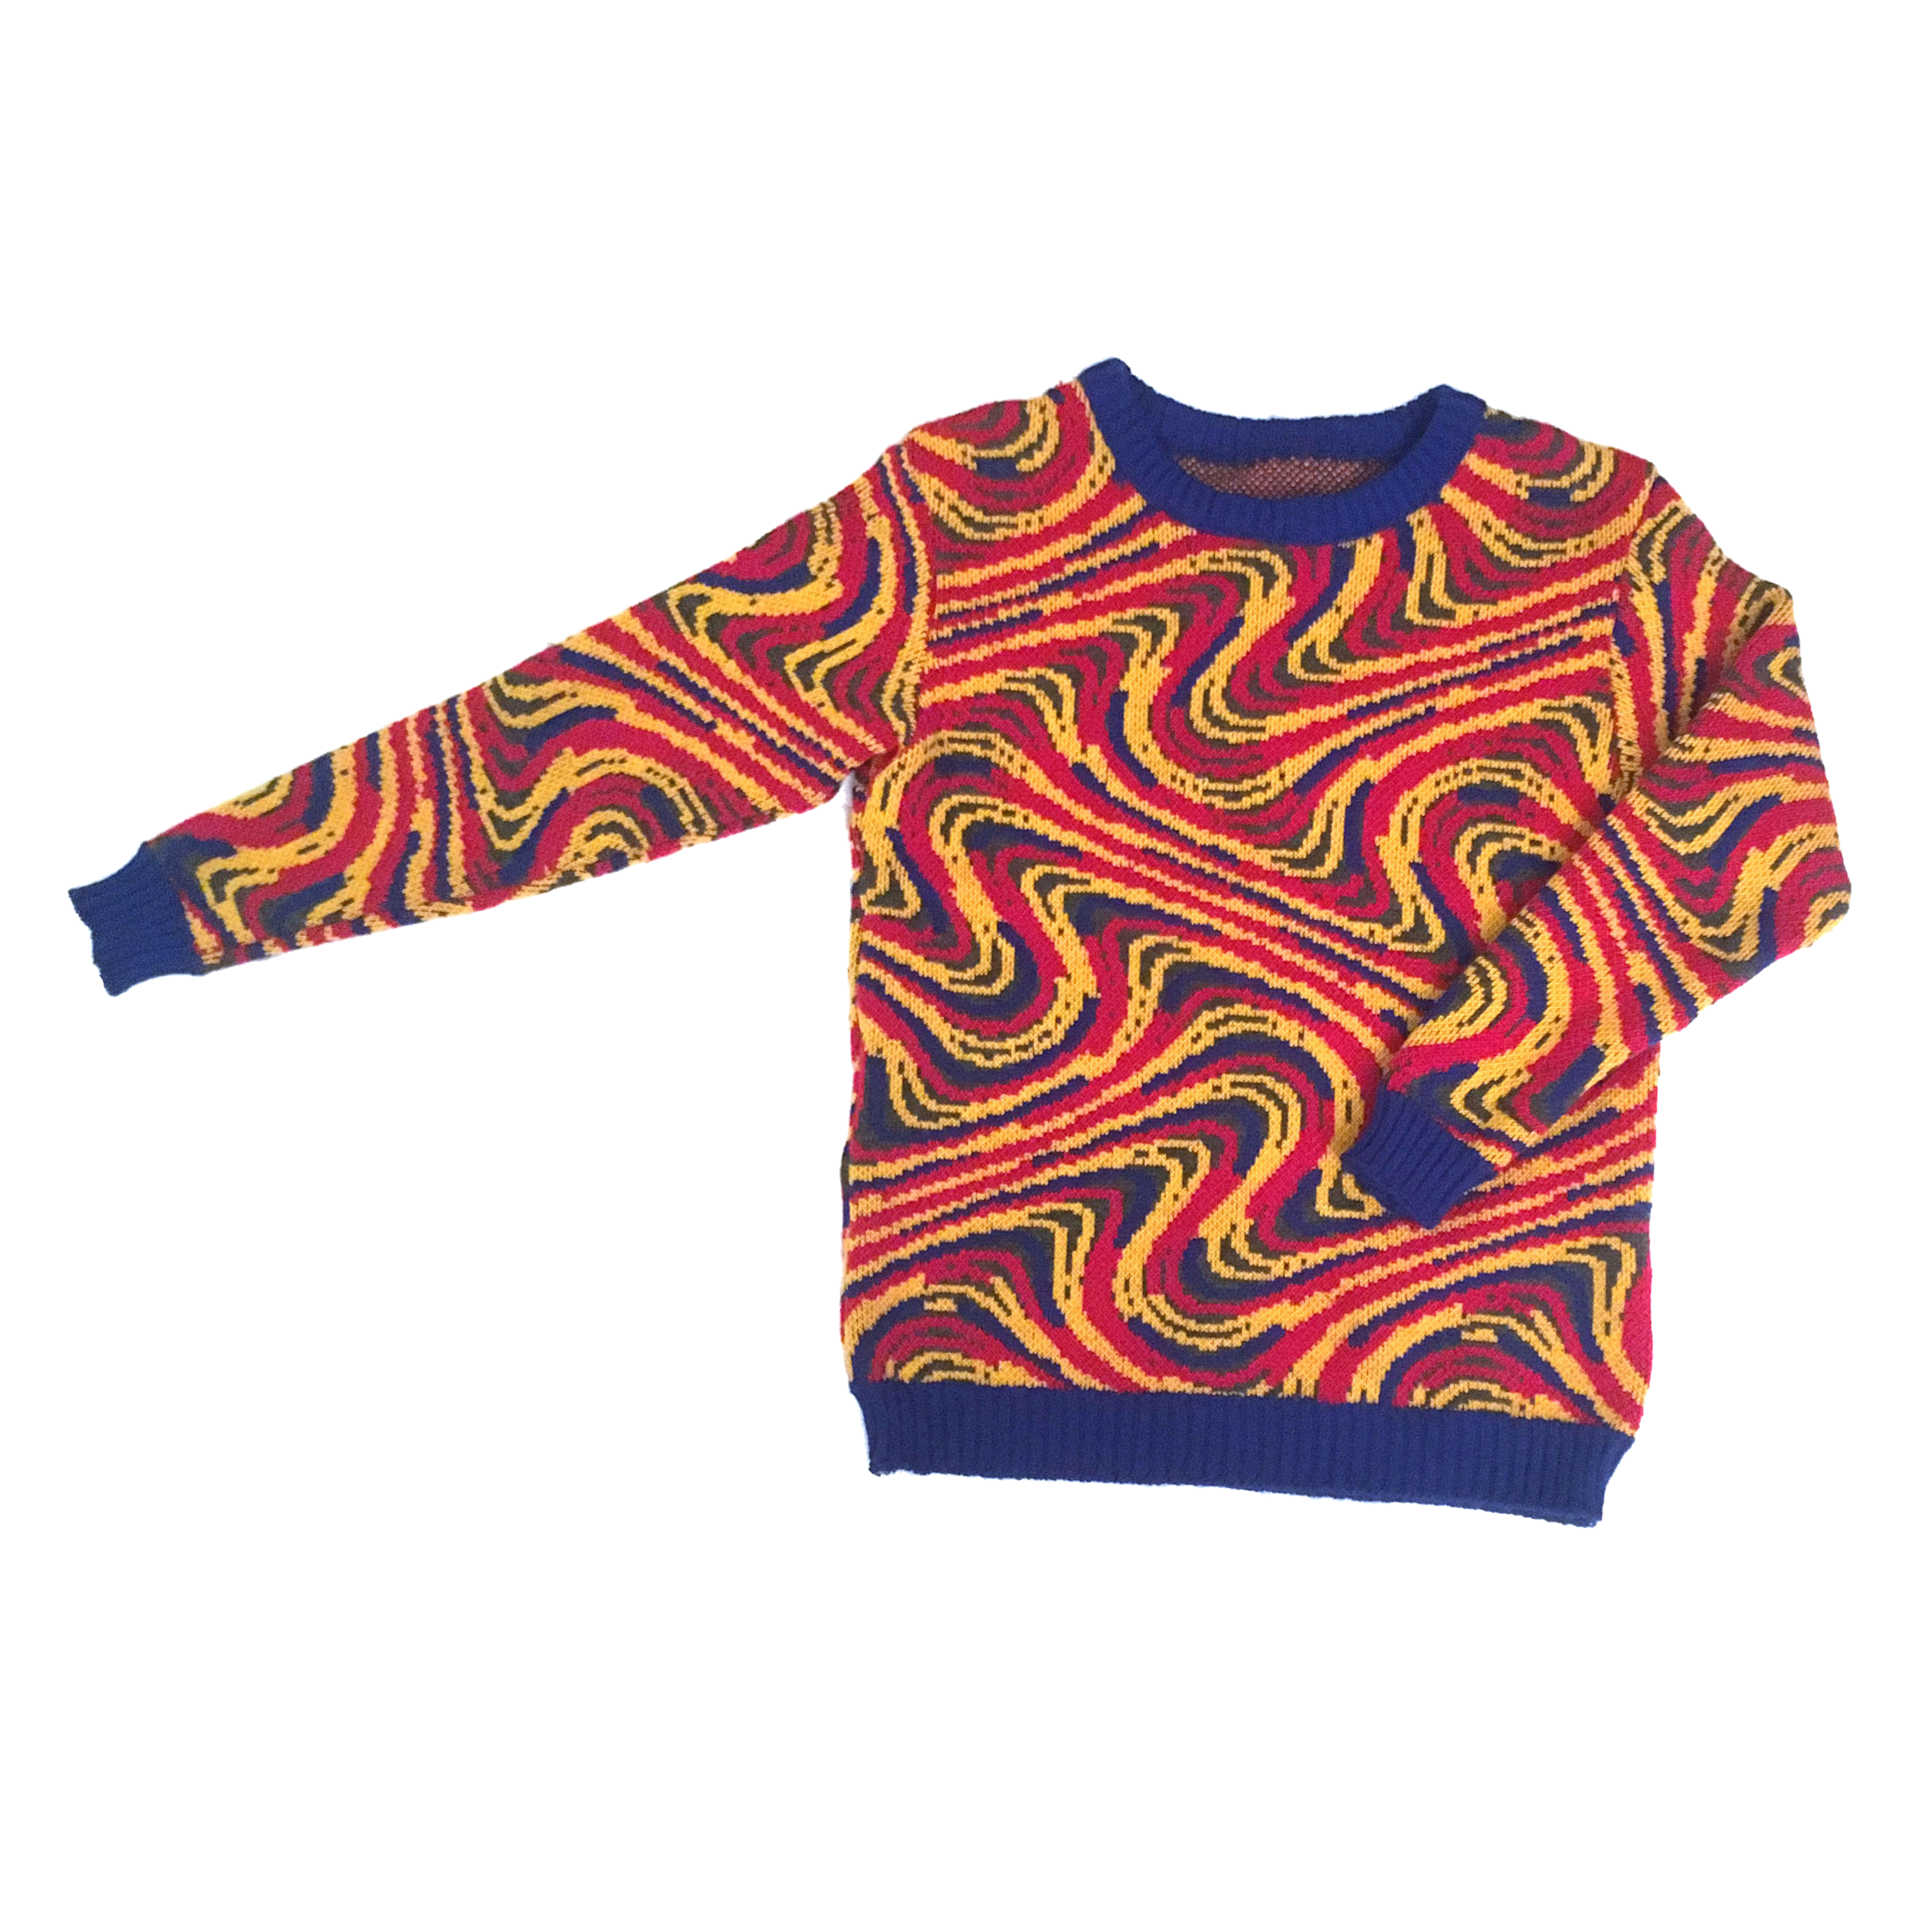 sweater-1.png